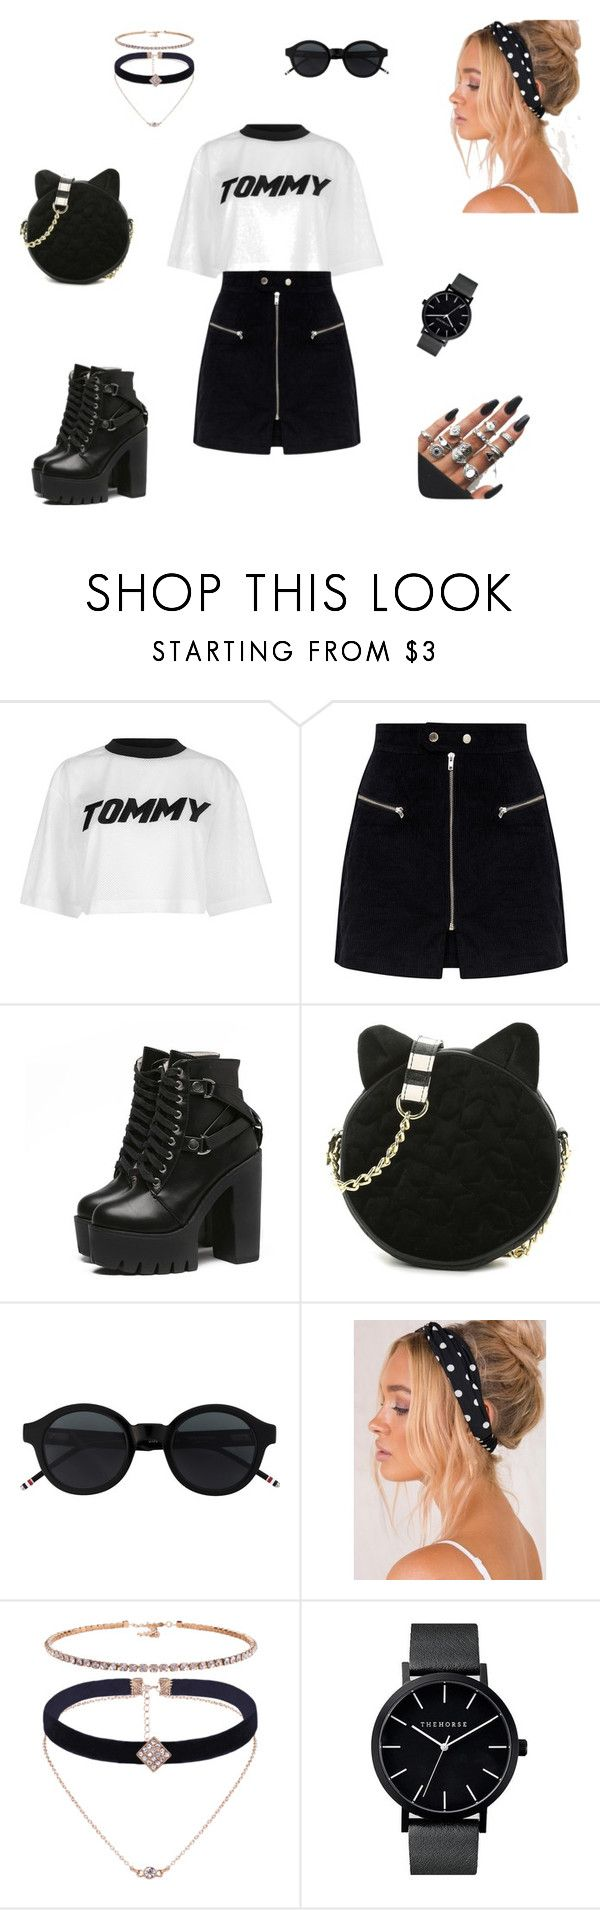 nr. 1 by patriivasca on Polyvore featuring Tommy Hilfiger and Betsey Johnson